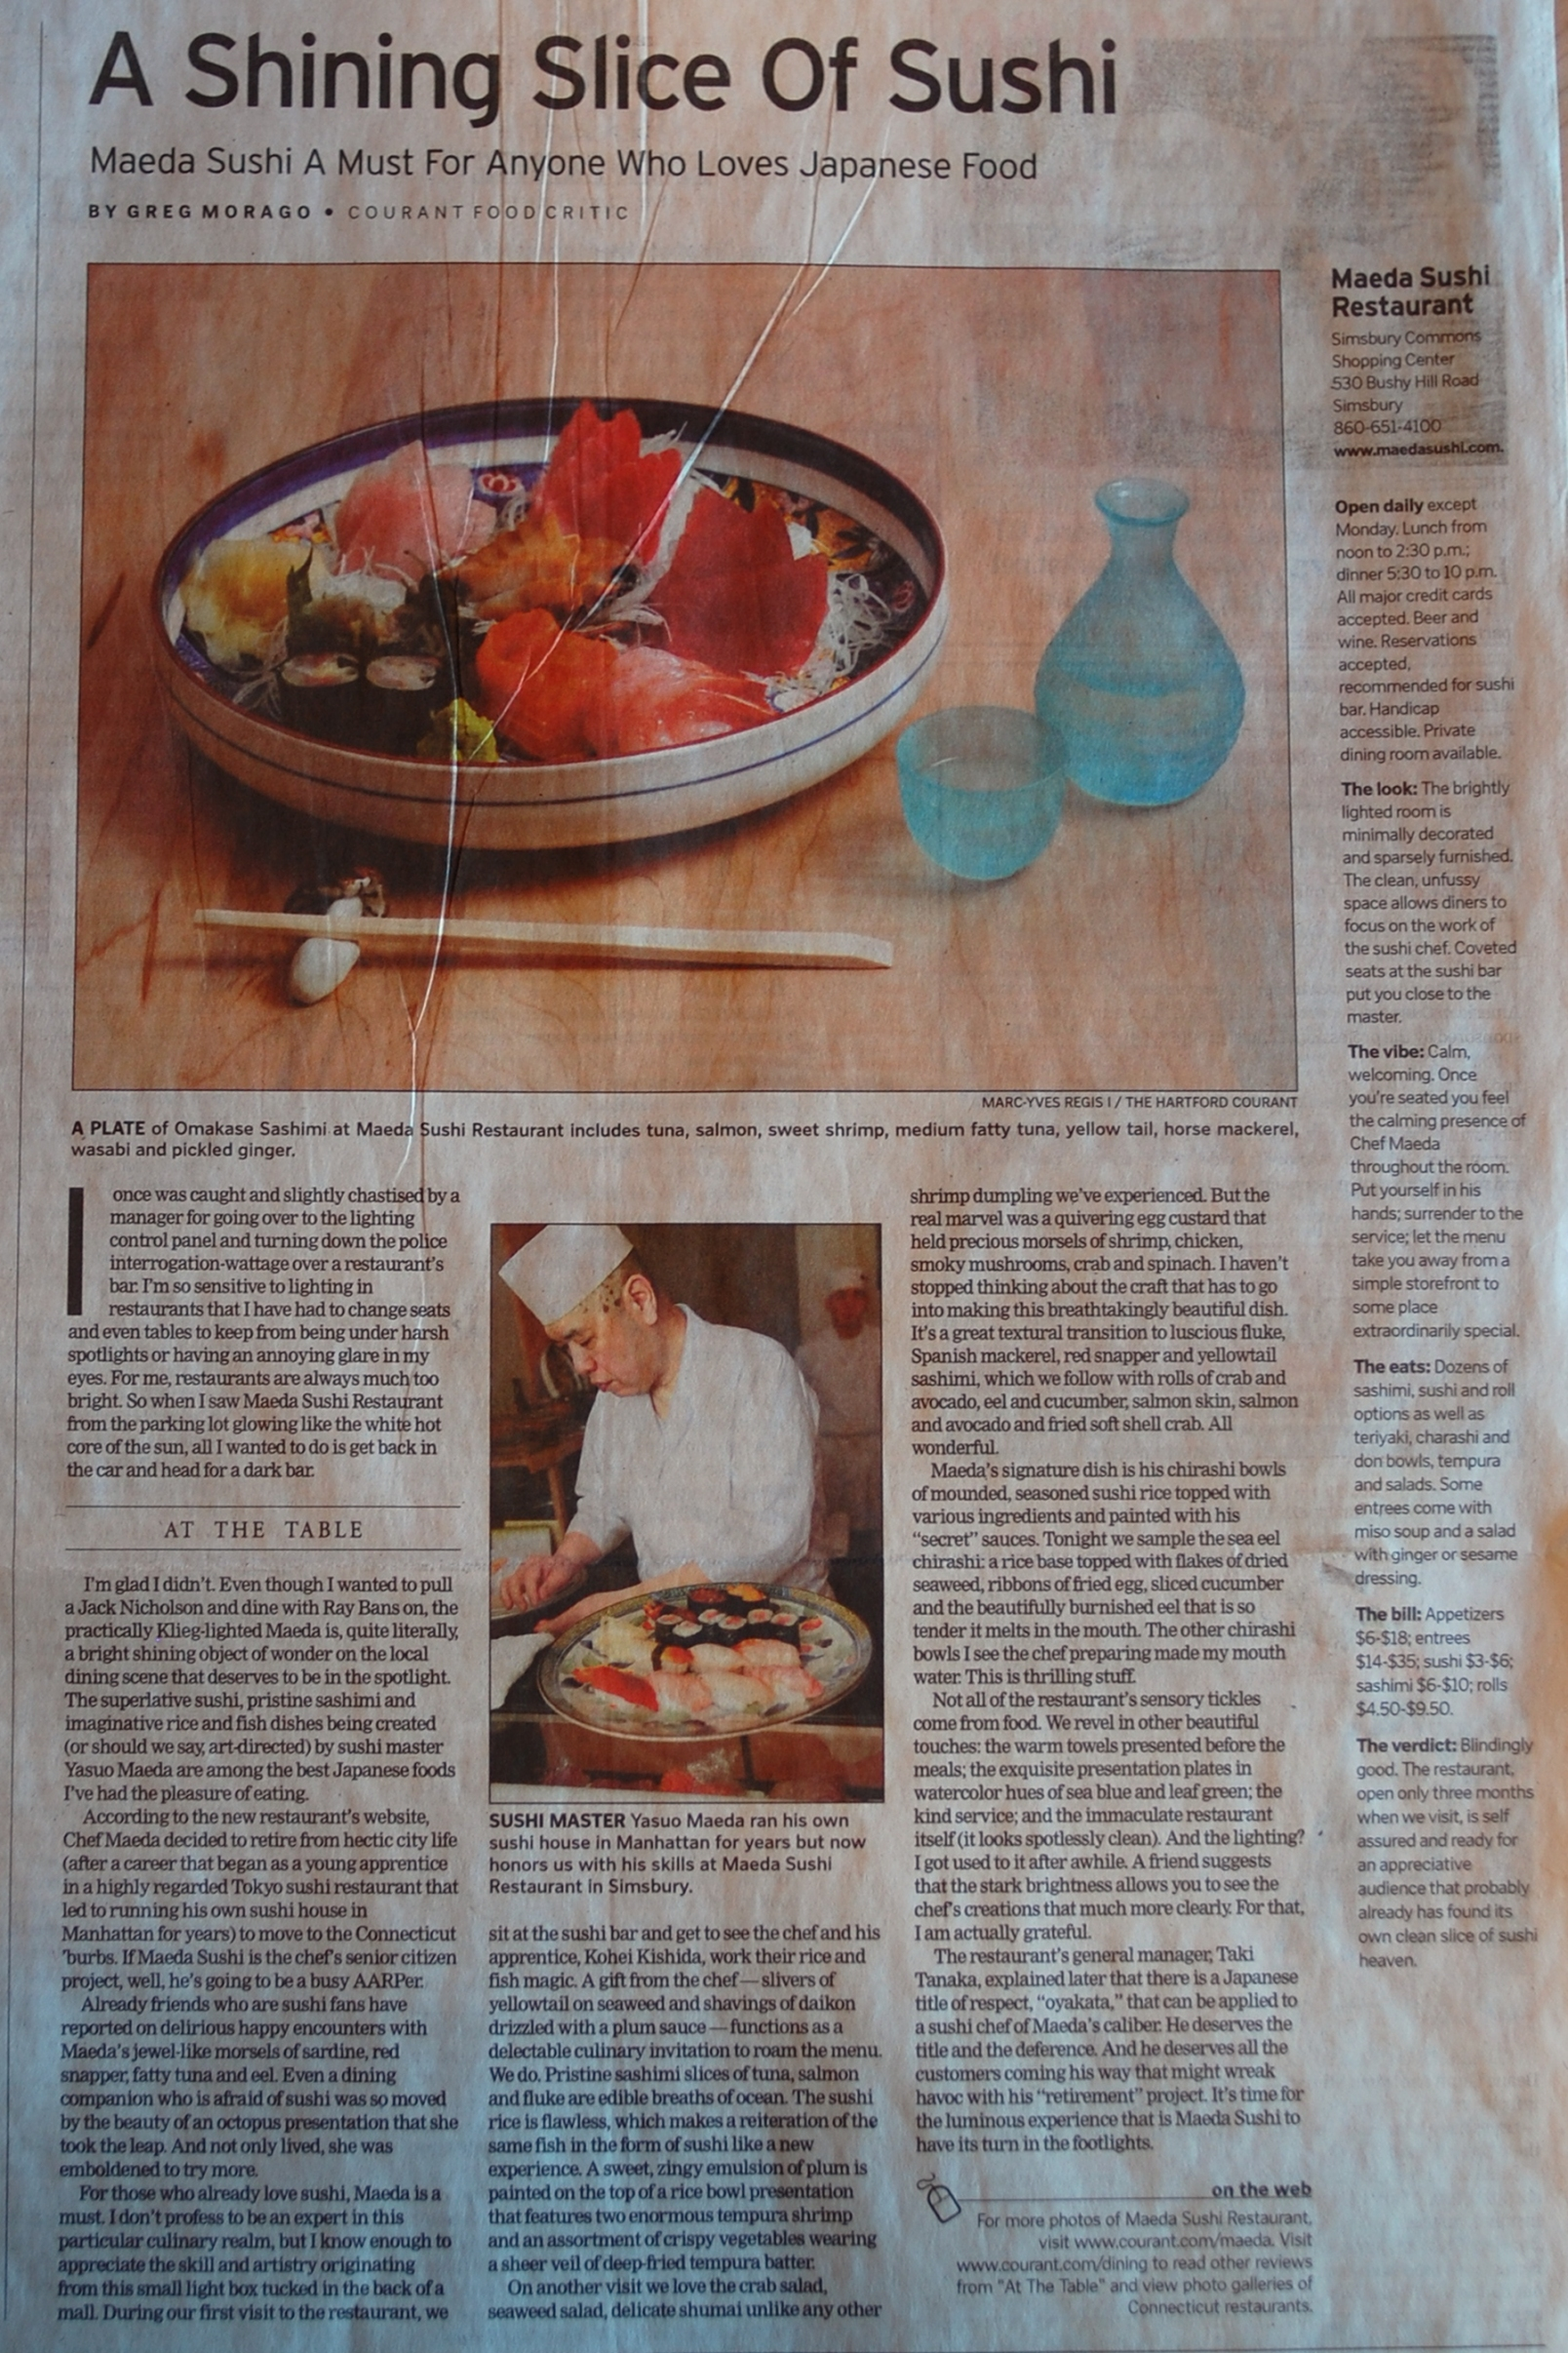 The Hartford Courant review of Maeda Sushi Restaurant